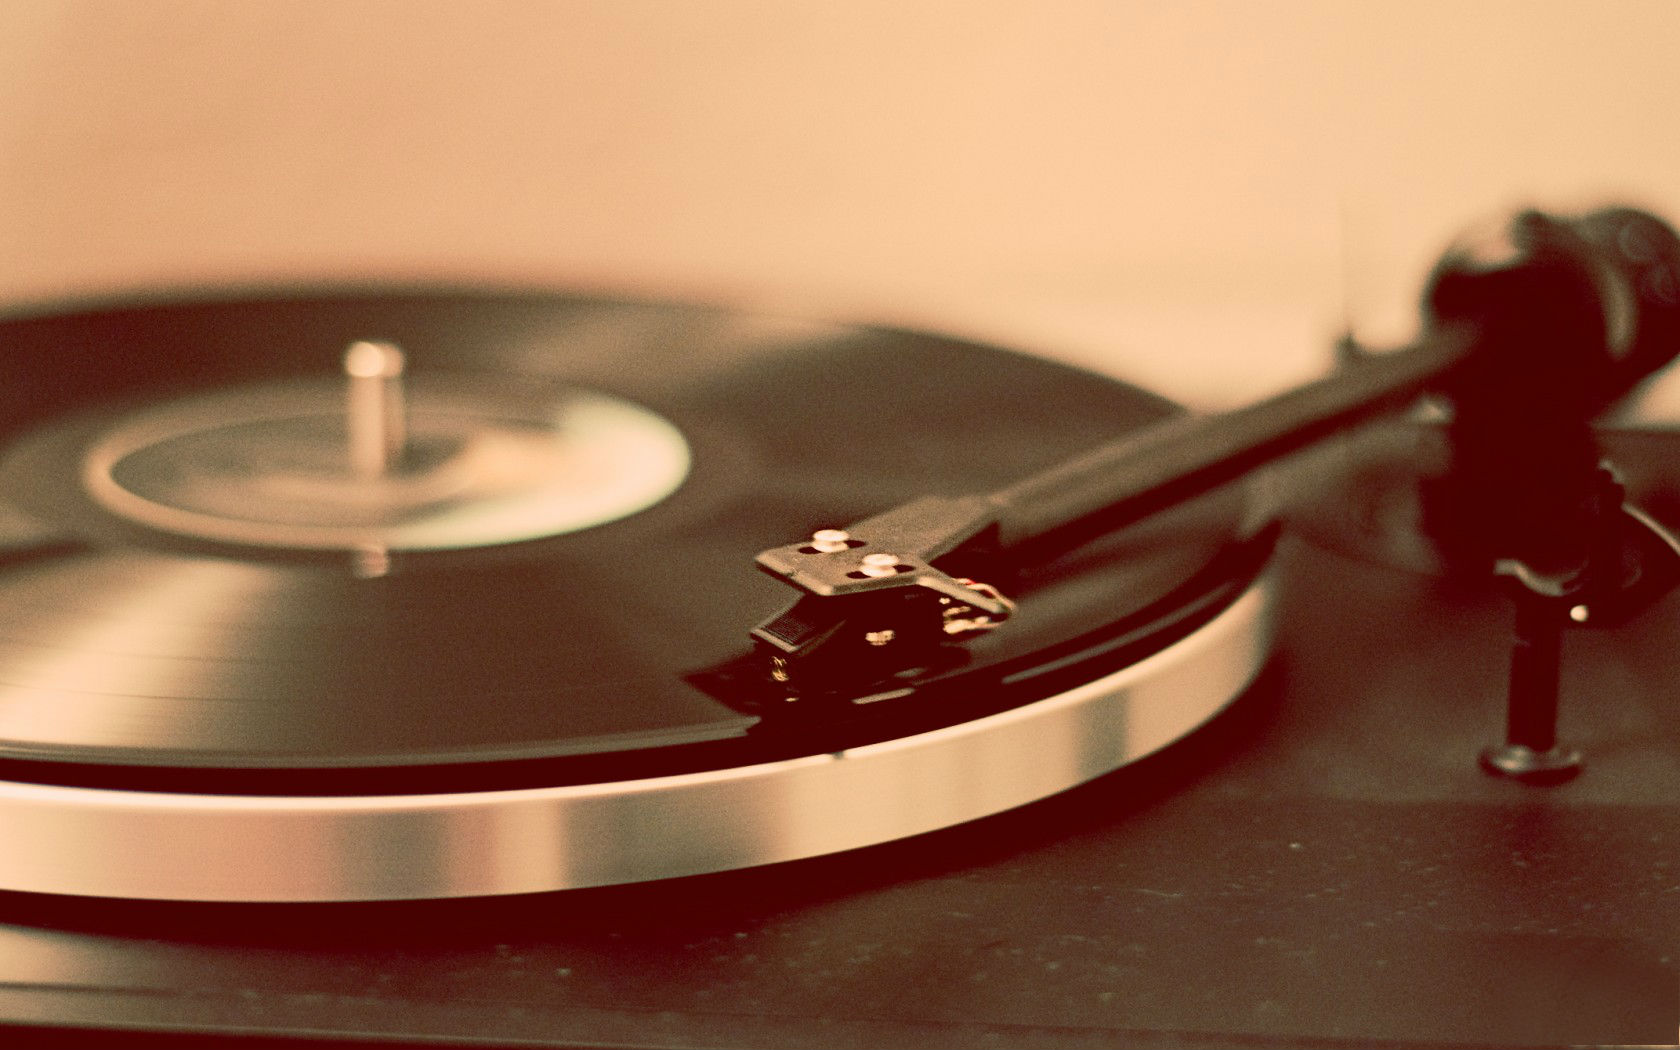 Turntable Record Player Wallpapers   1680x1050   209206 1680x1050